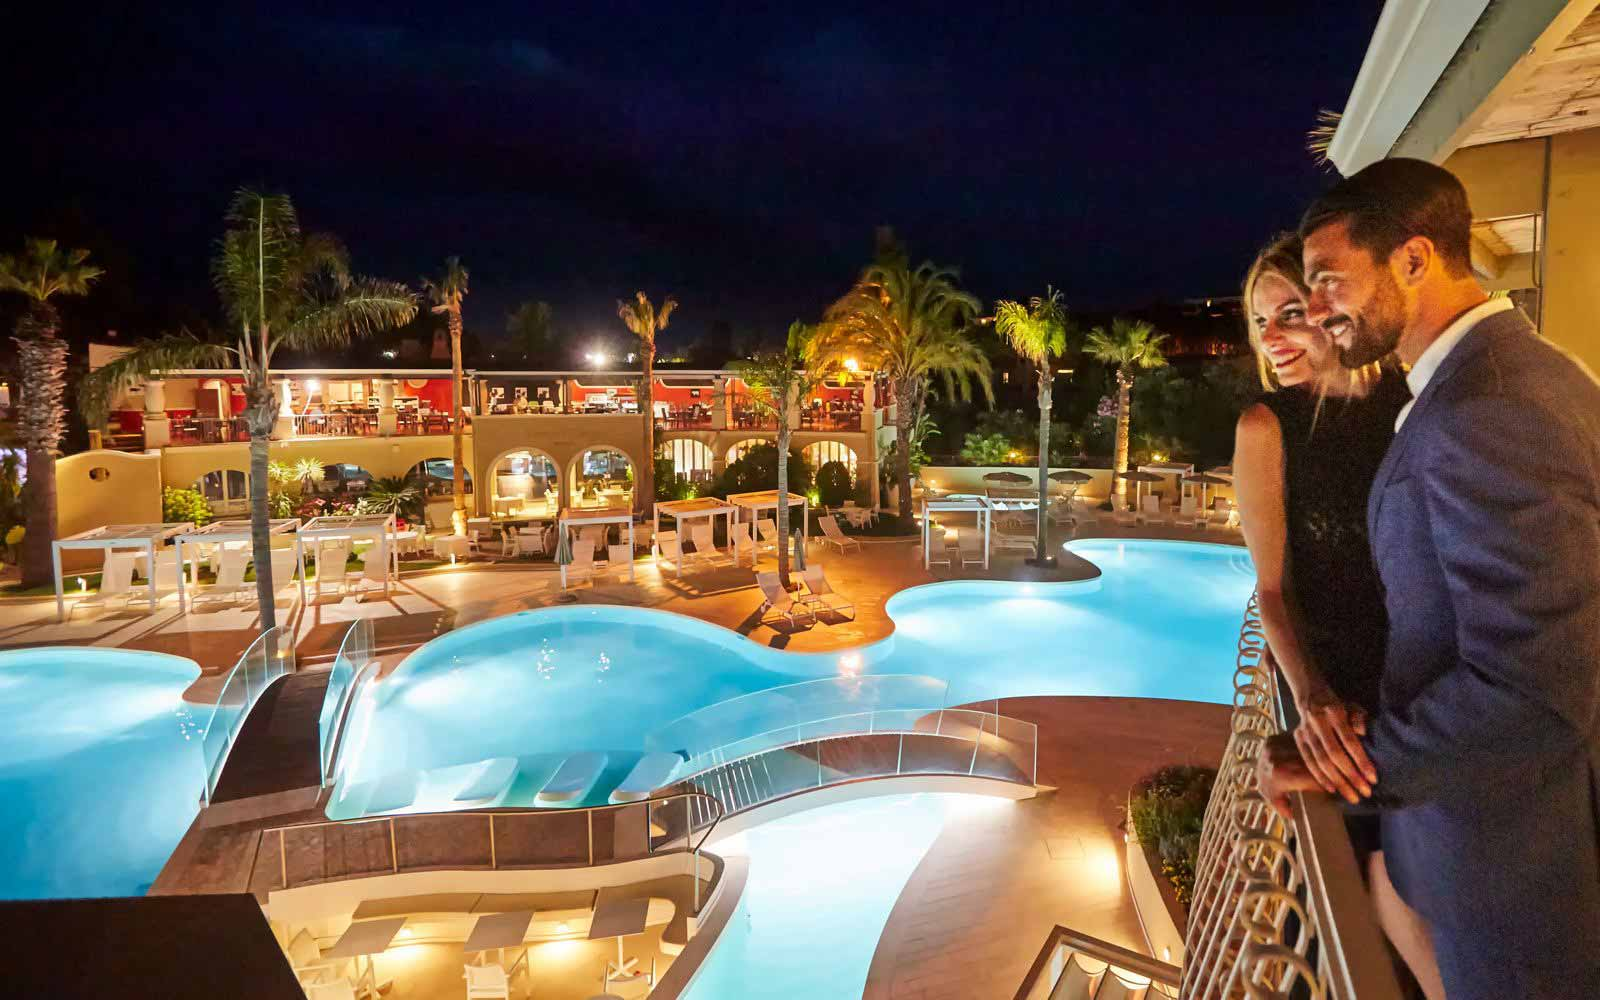 Night atmosphere at the Forte Village Resort